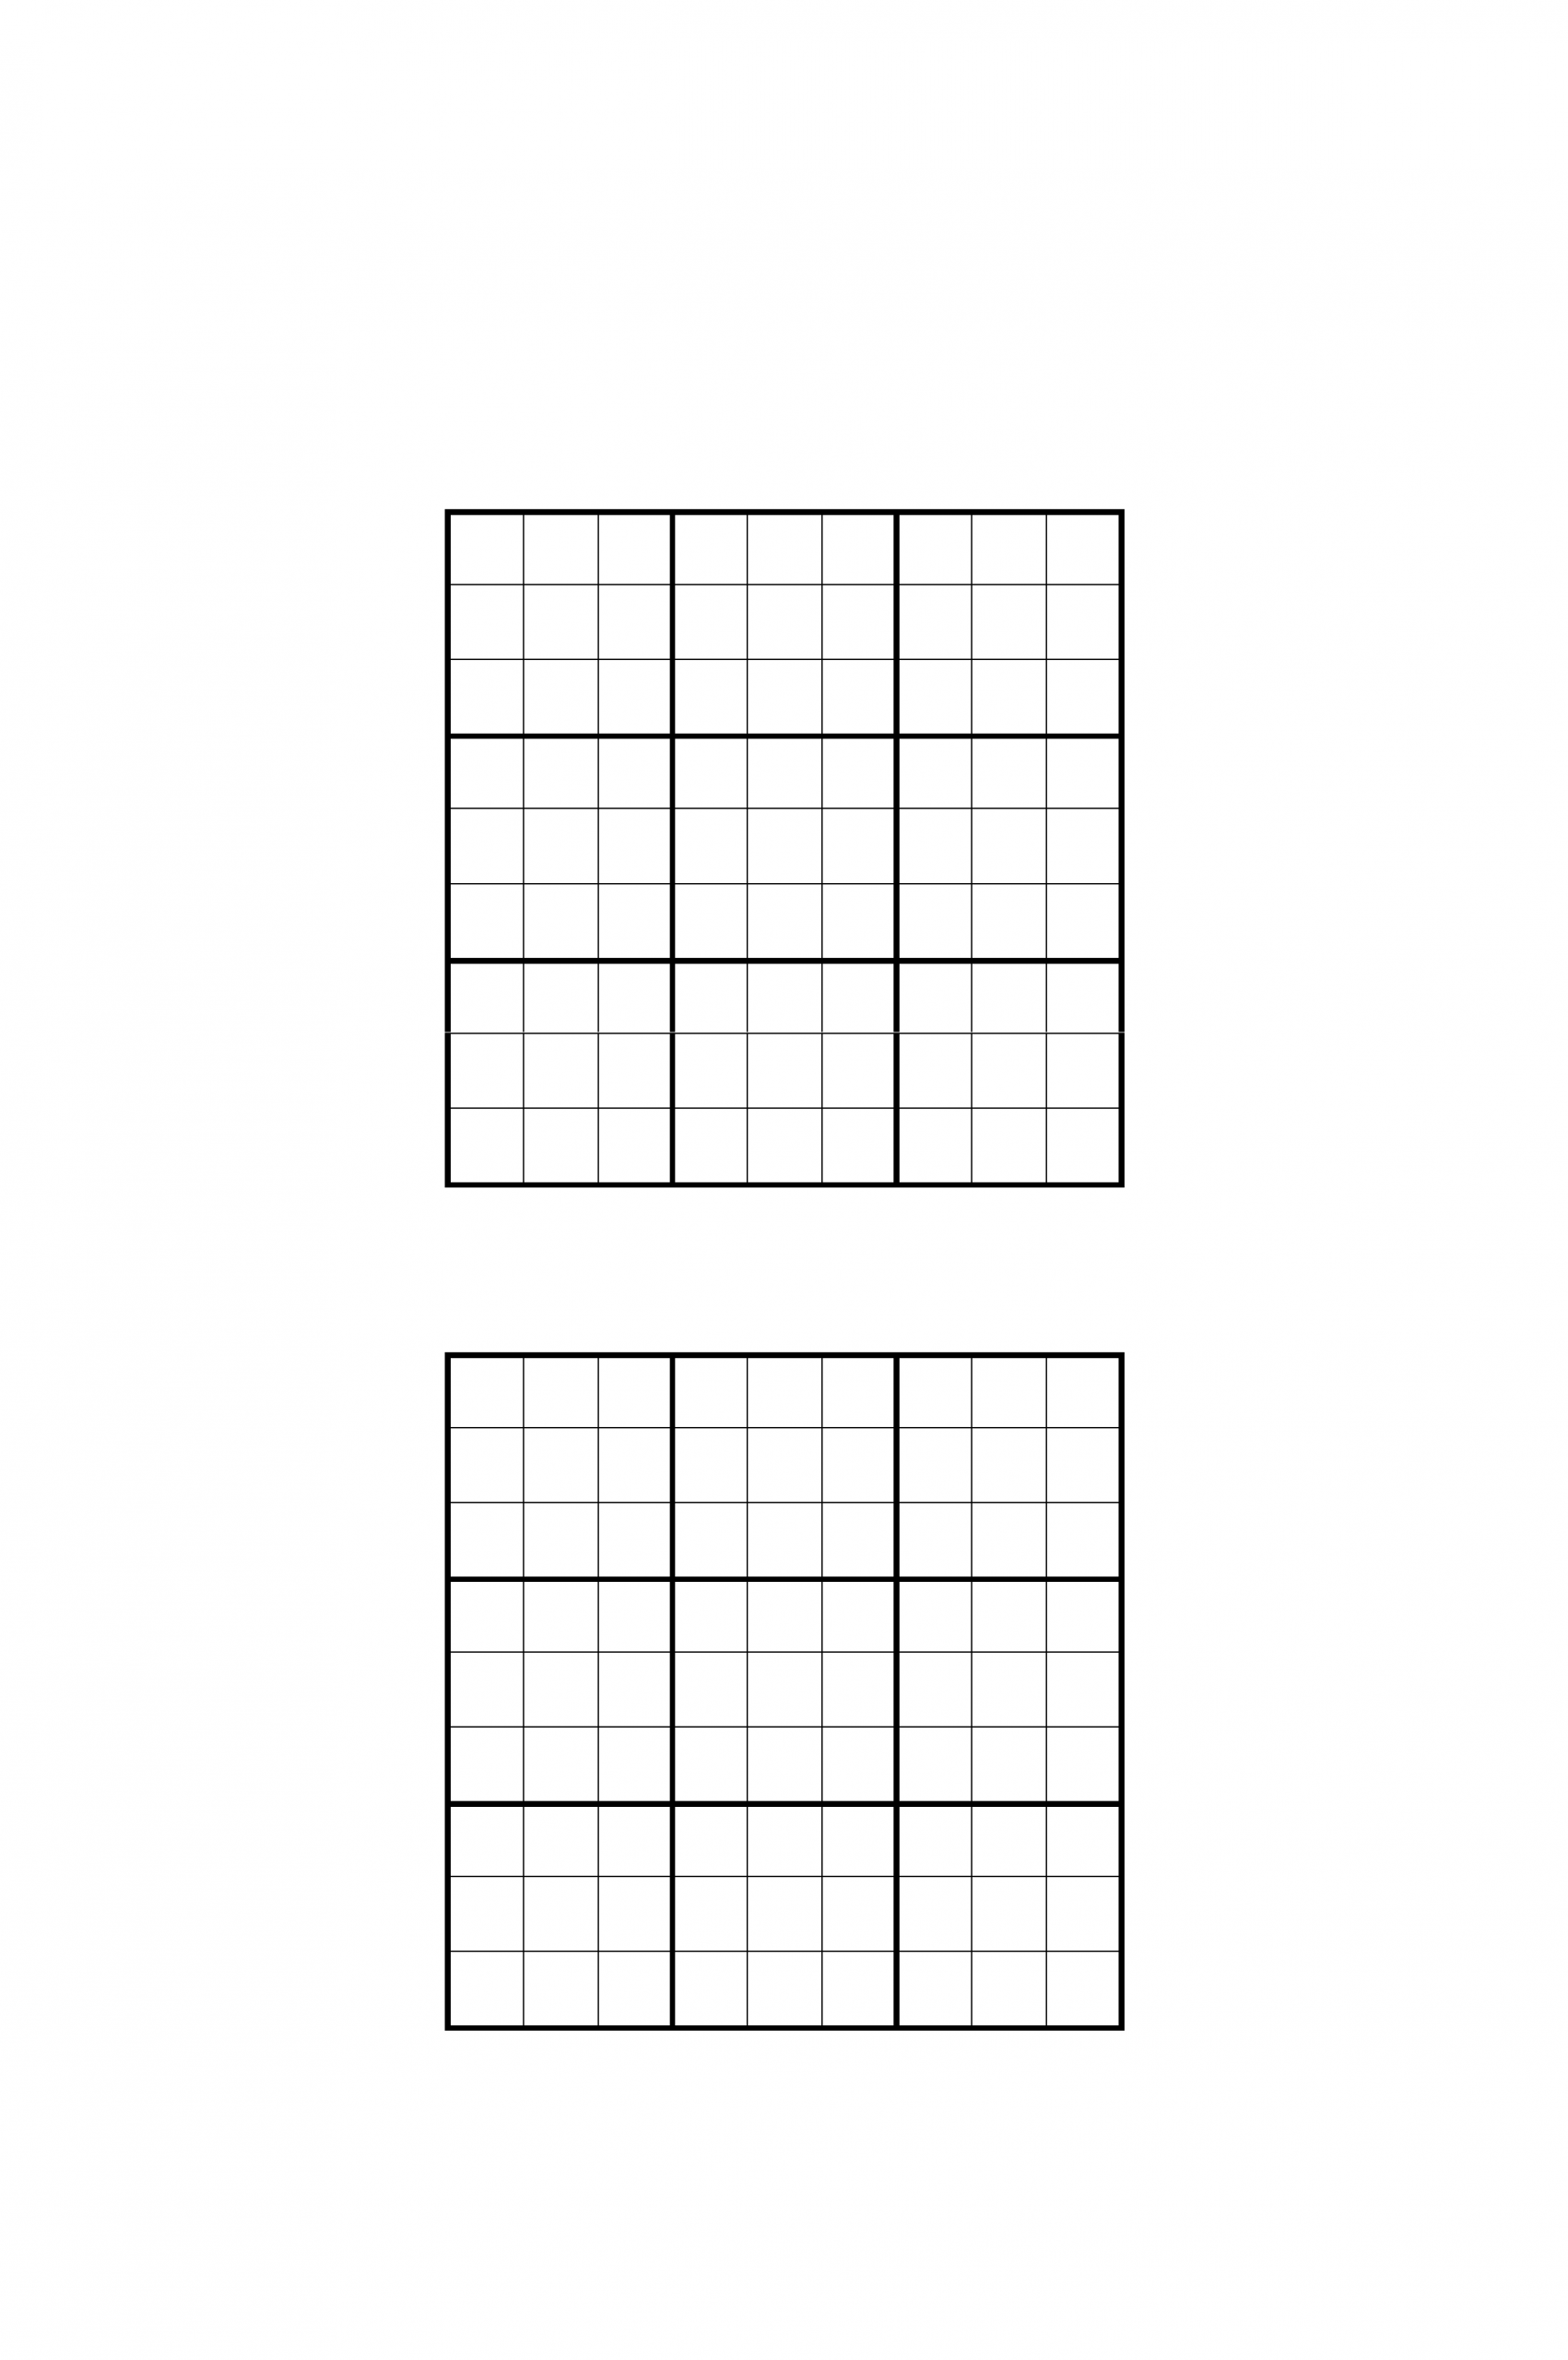 Sudoku Grids Template Free Download